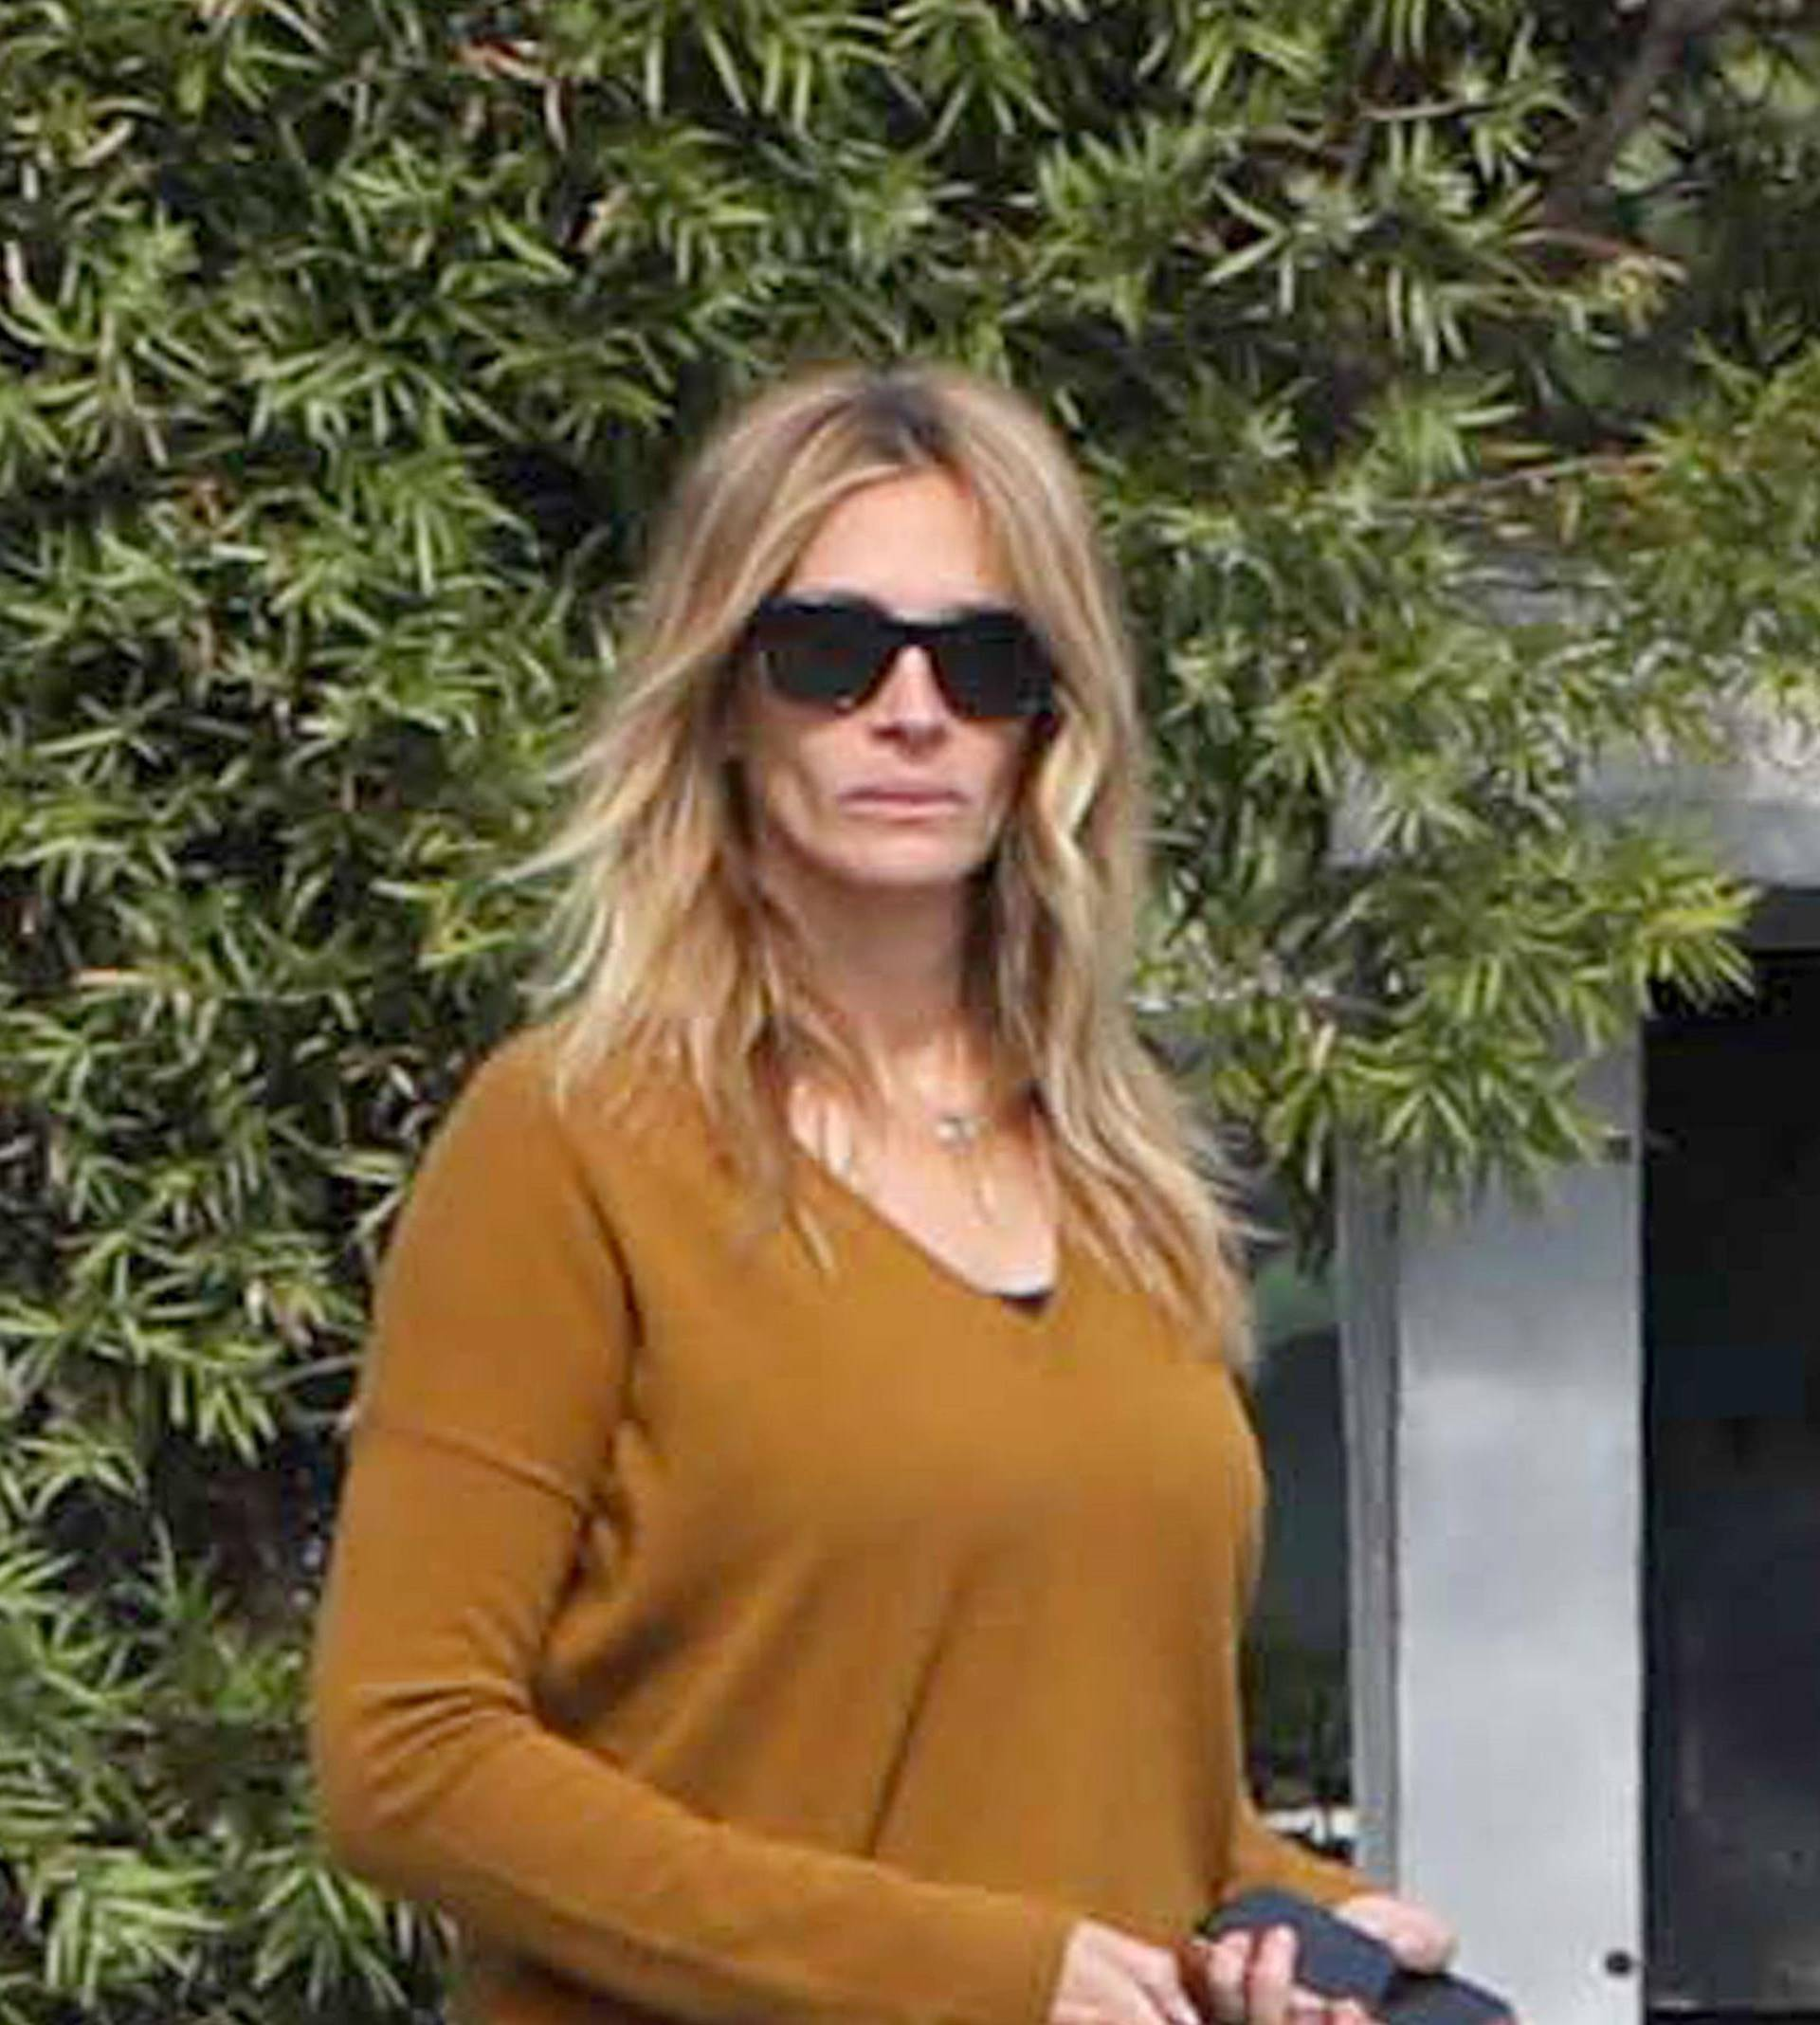 *EXCLUSIVE* Julia Roberts walks out of the Malibu Urgent Care